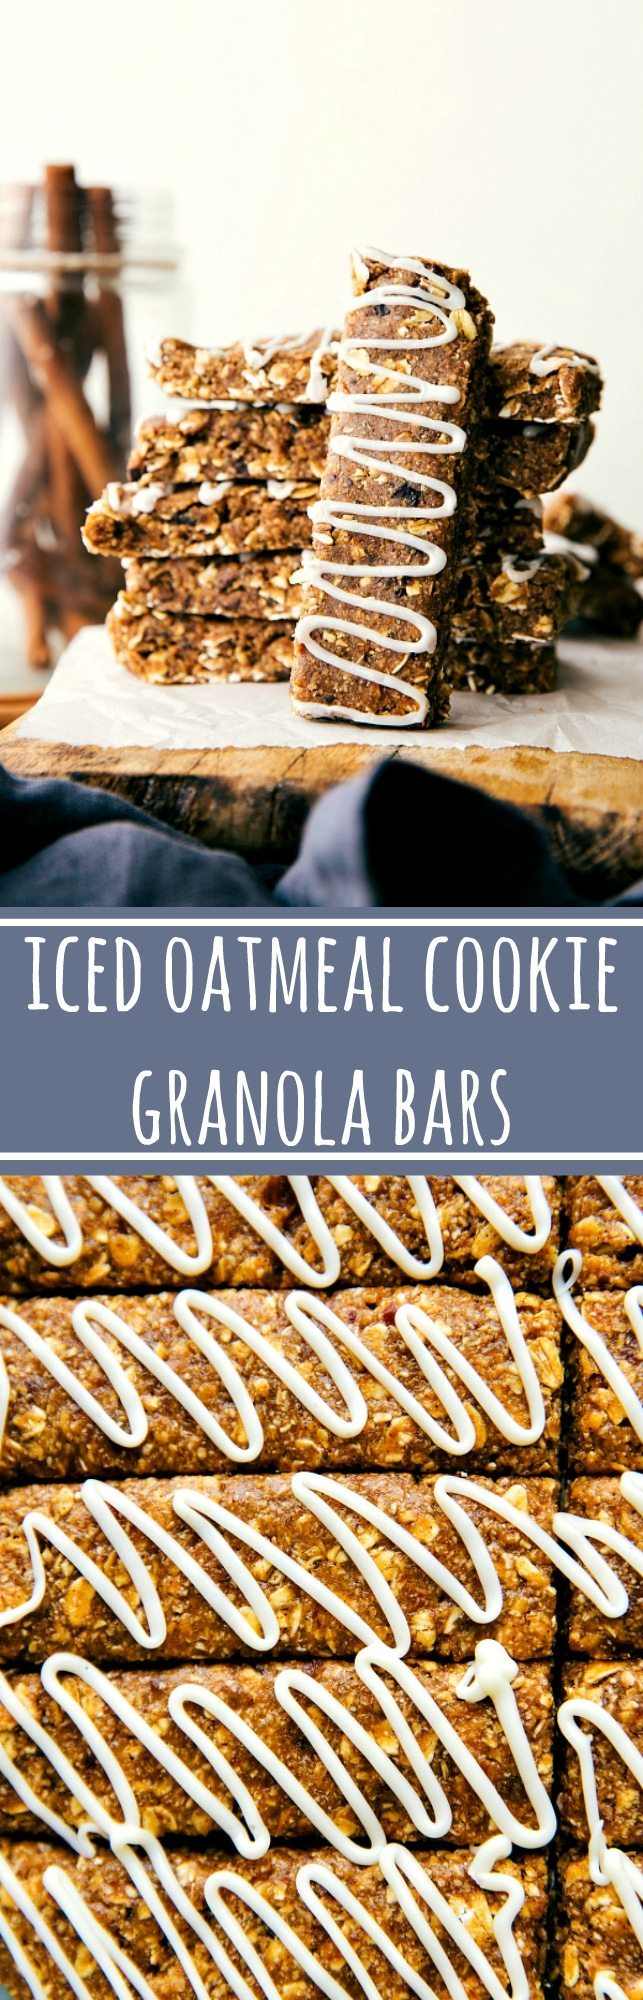 Easy to make (no baking!) soft and chewy granola bars made to taste like an iced oatmeal cookie